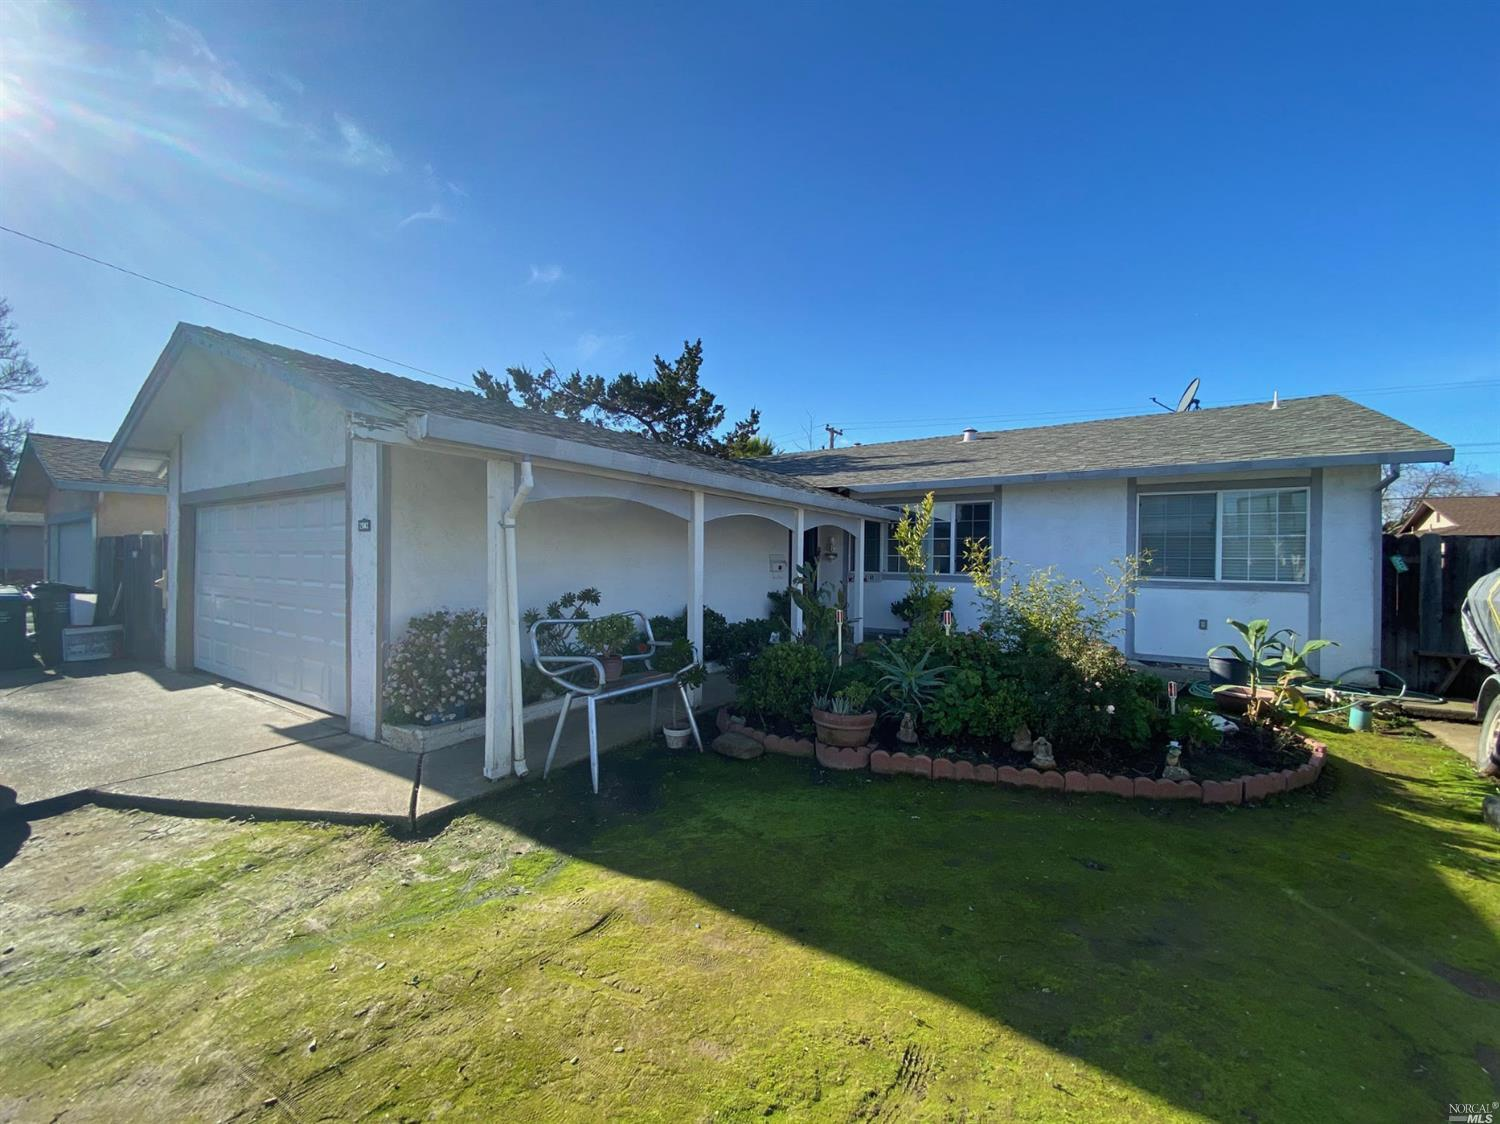 A Dover Terrace 4 bed 2 bath single story home with 1300 sq feet of living space. Located on a quiet